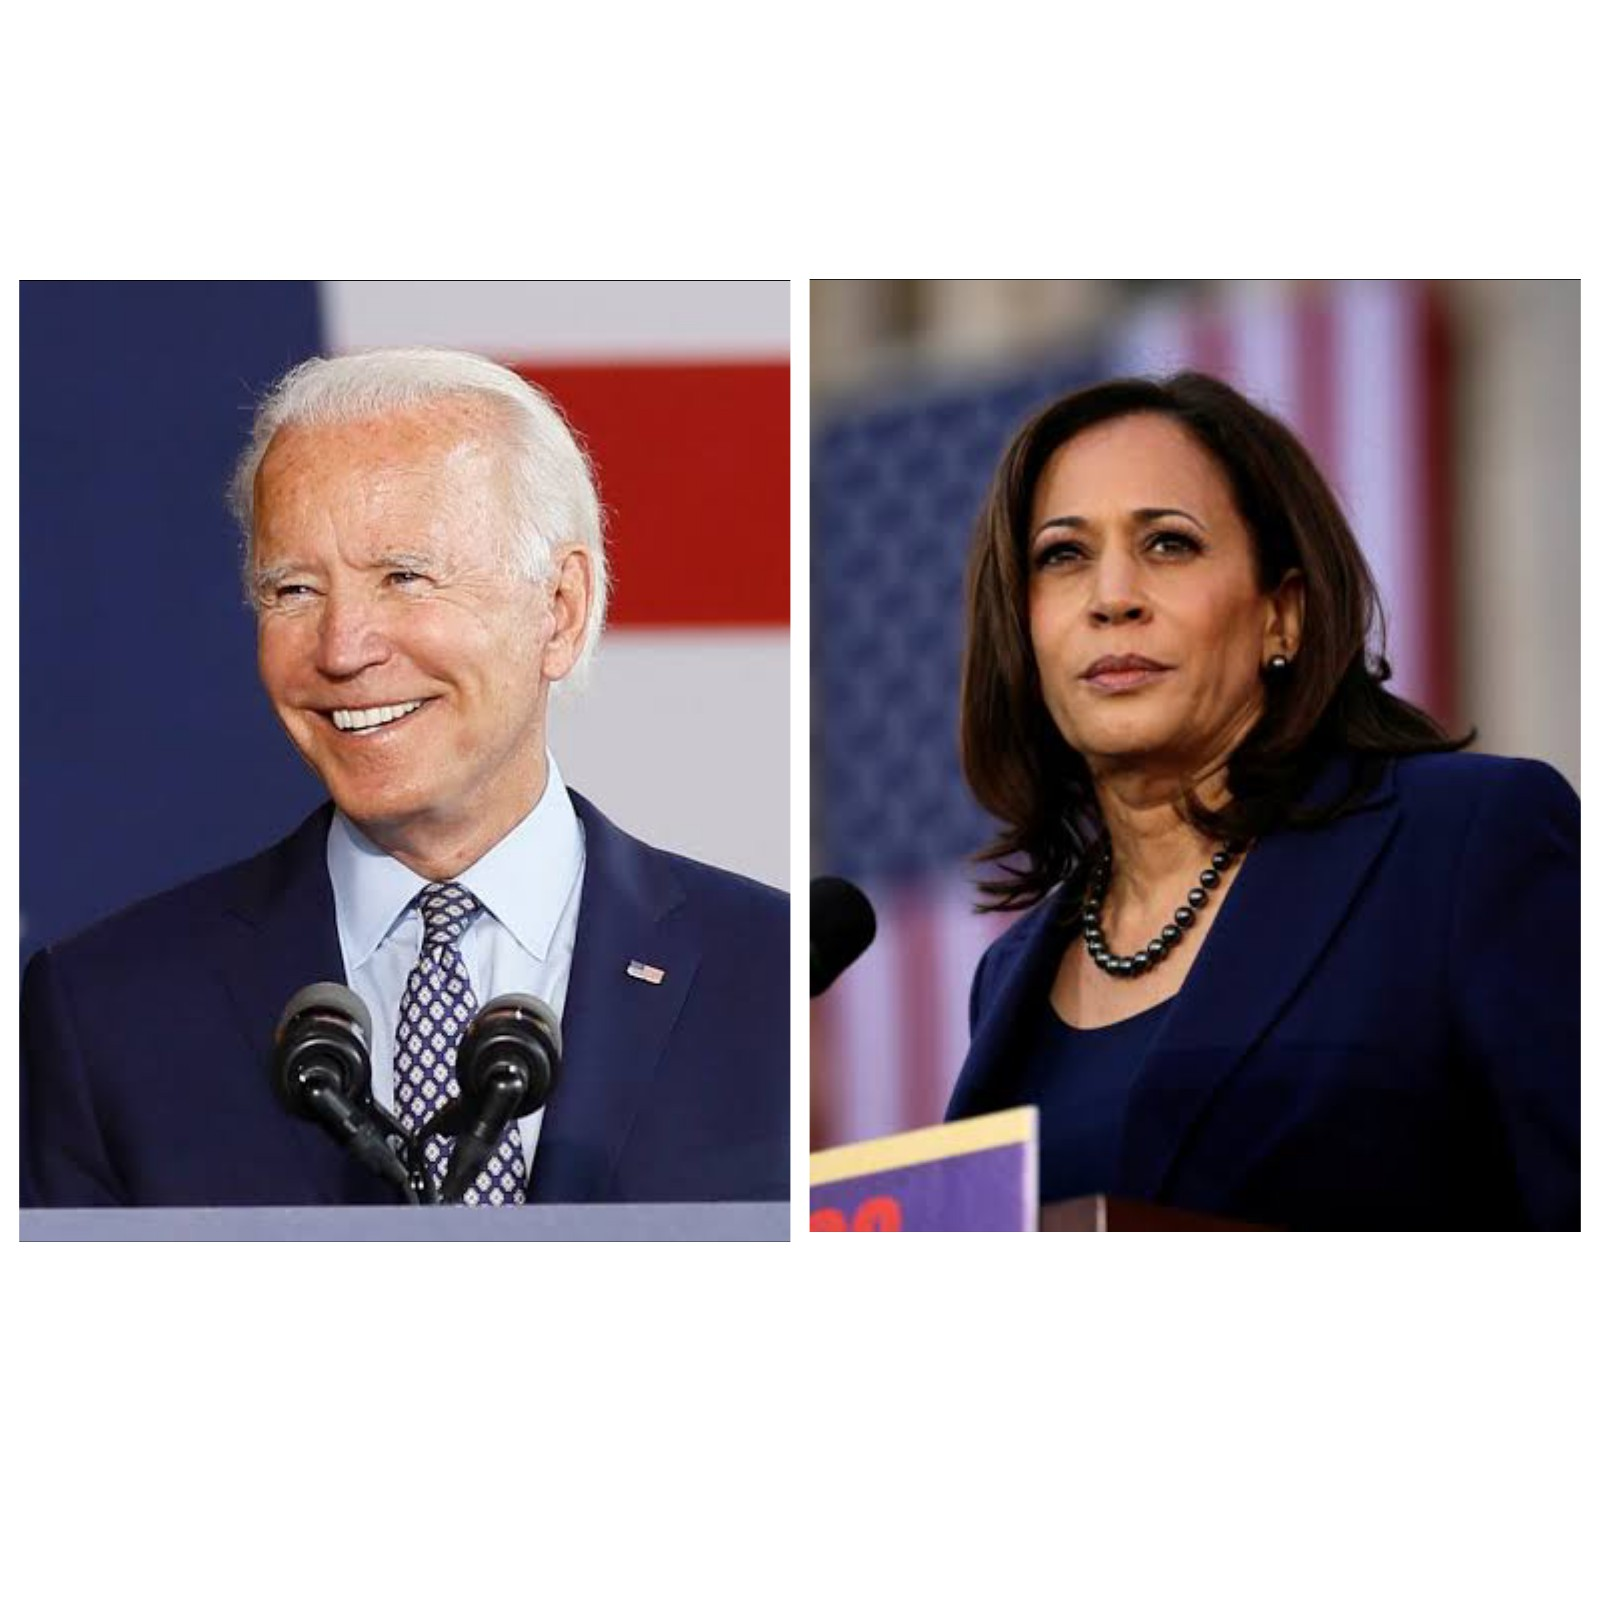 Biden and Harris make 1st appearance as historic